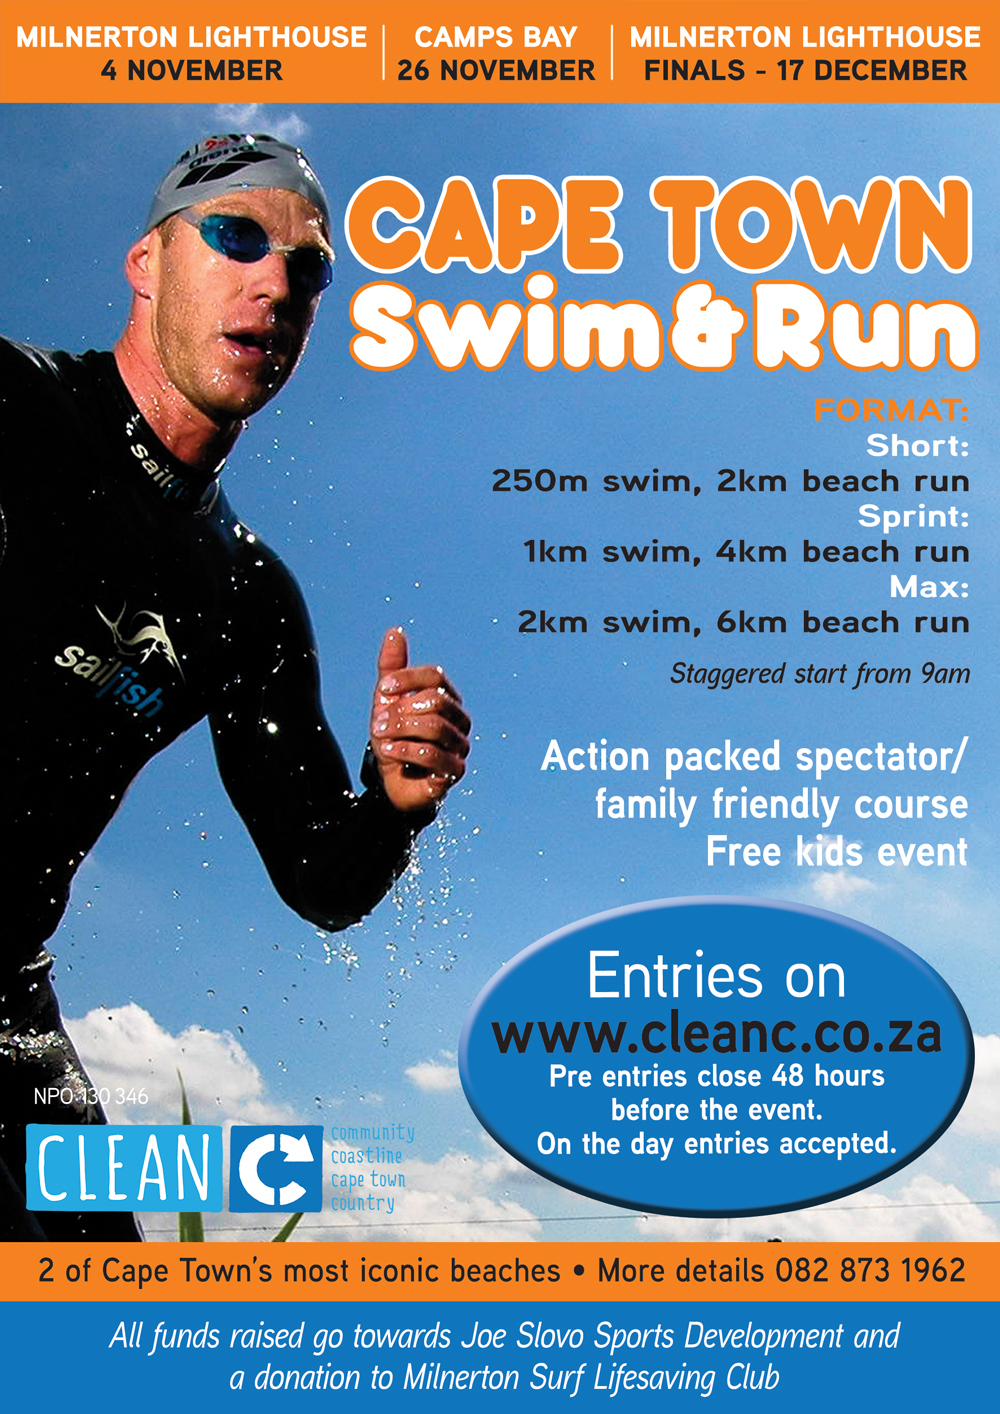 Cape Town Swim Run | Milnerton Lighthouse | Finals 17 December 2017